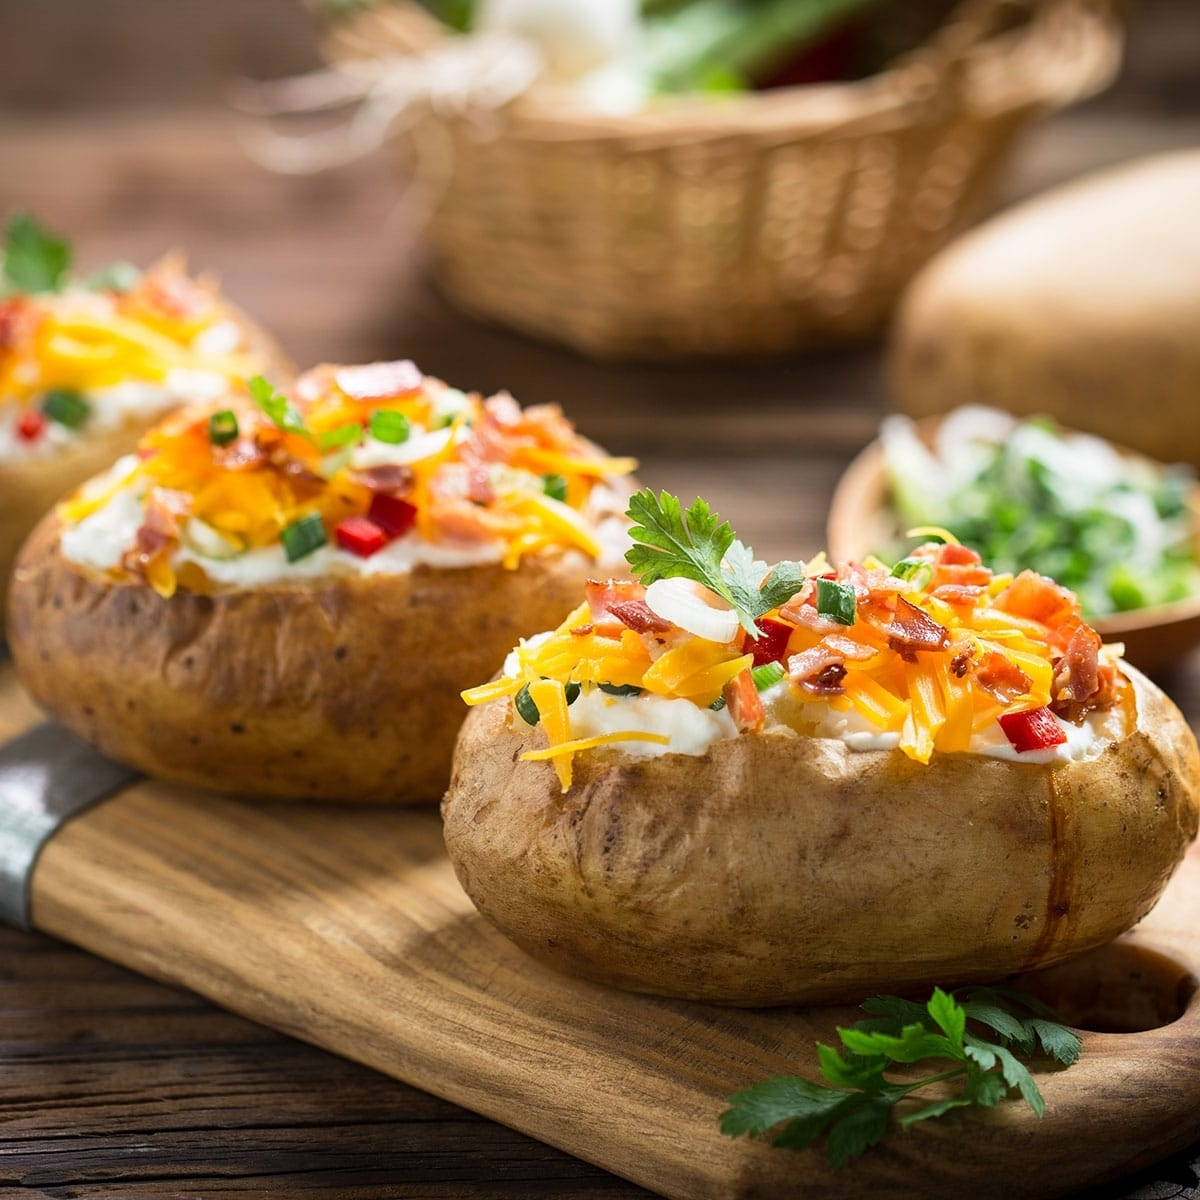 National Potato Day - August 19, 2019 | National Today intended for National Foods Day Calendar August